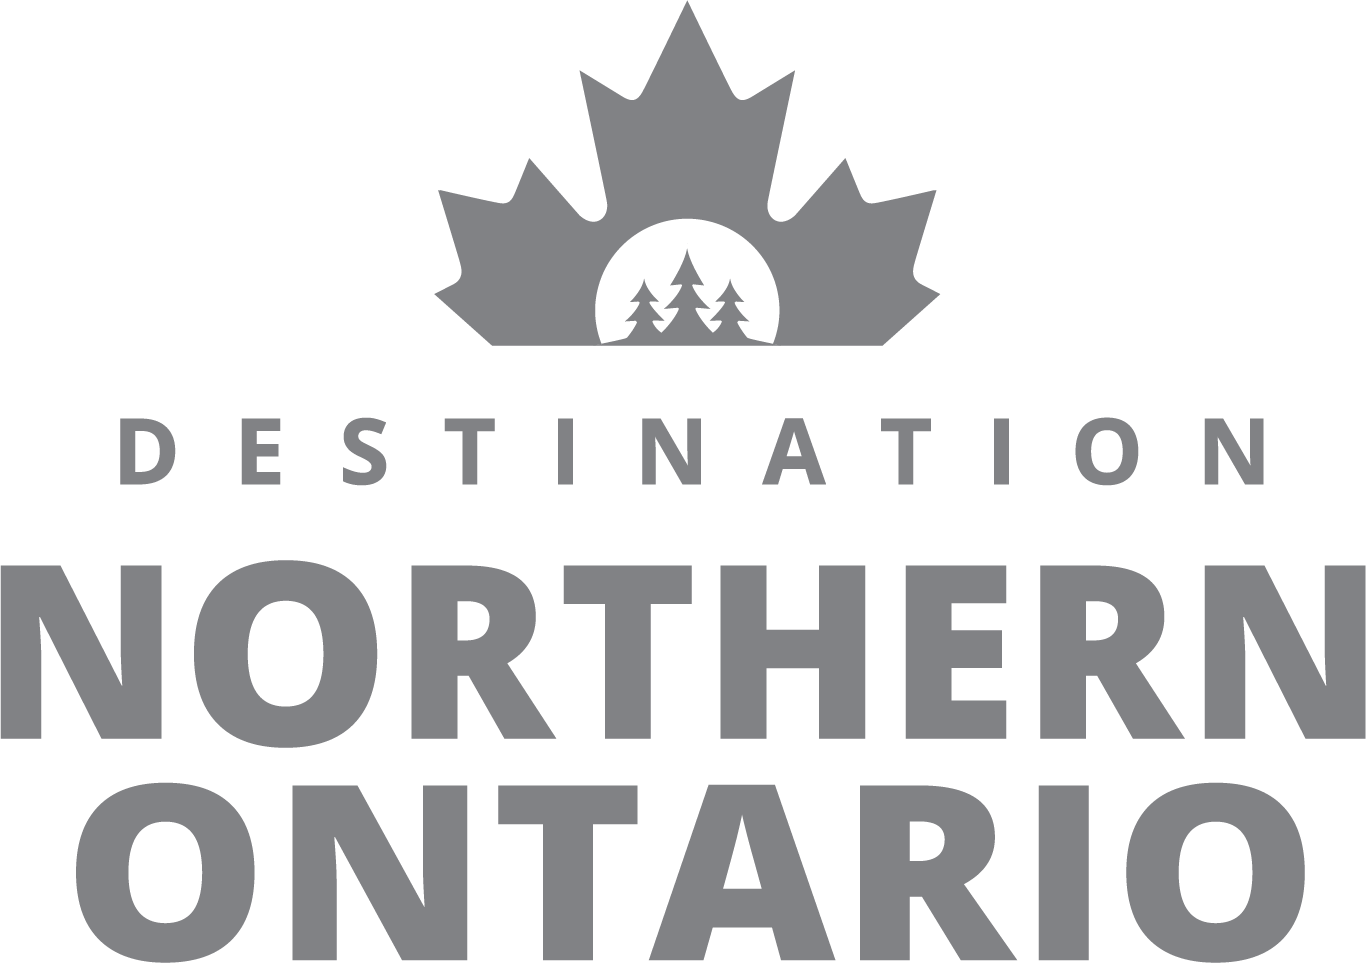 DestinationNorthernOntario_lightgrey